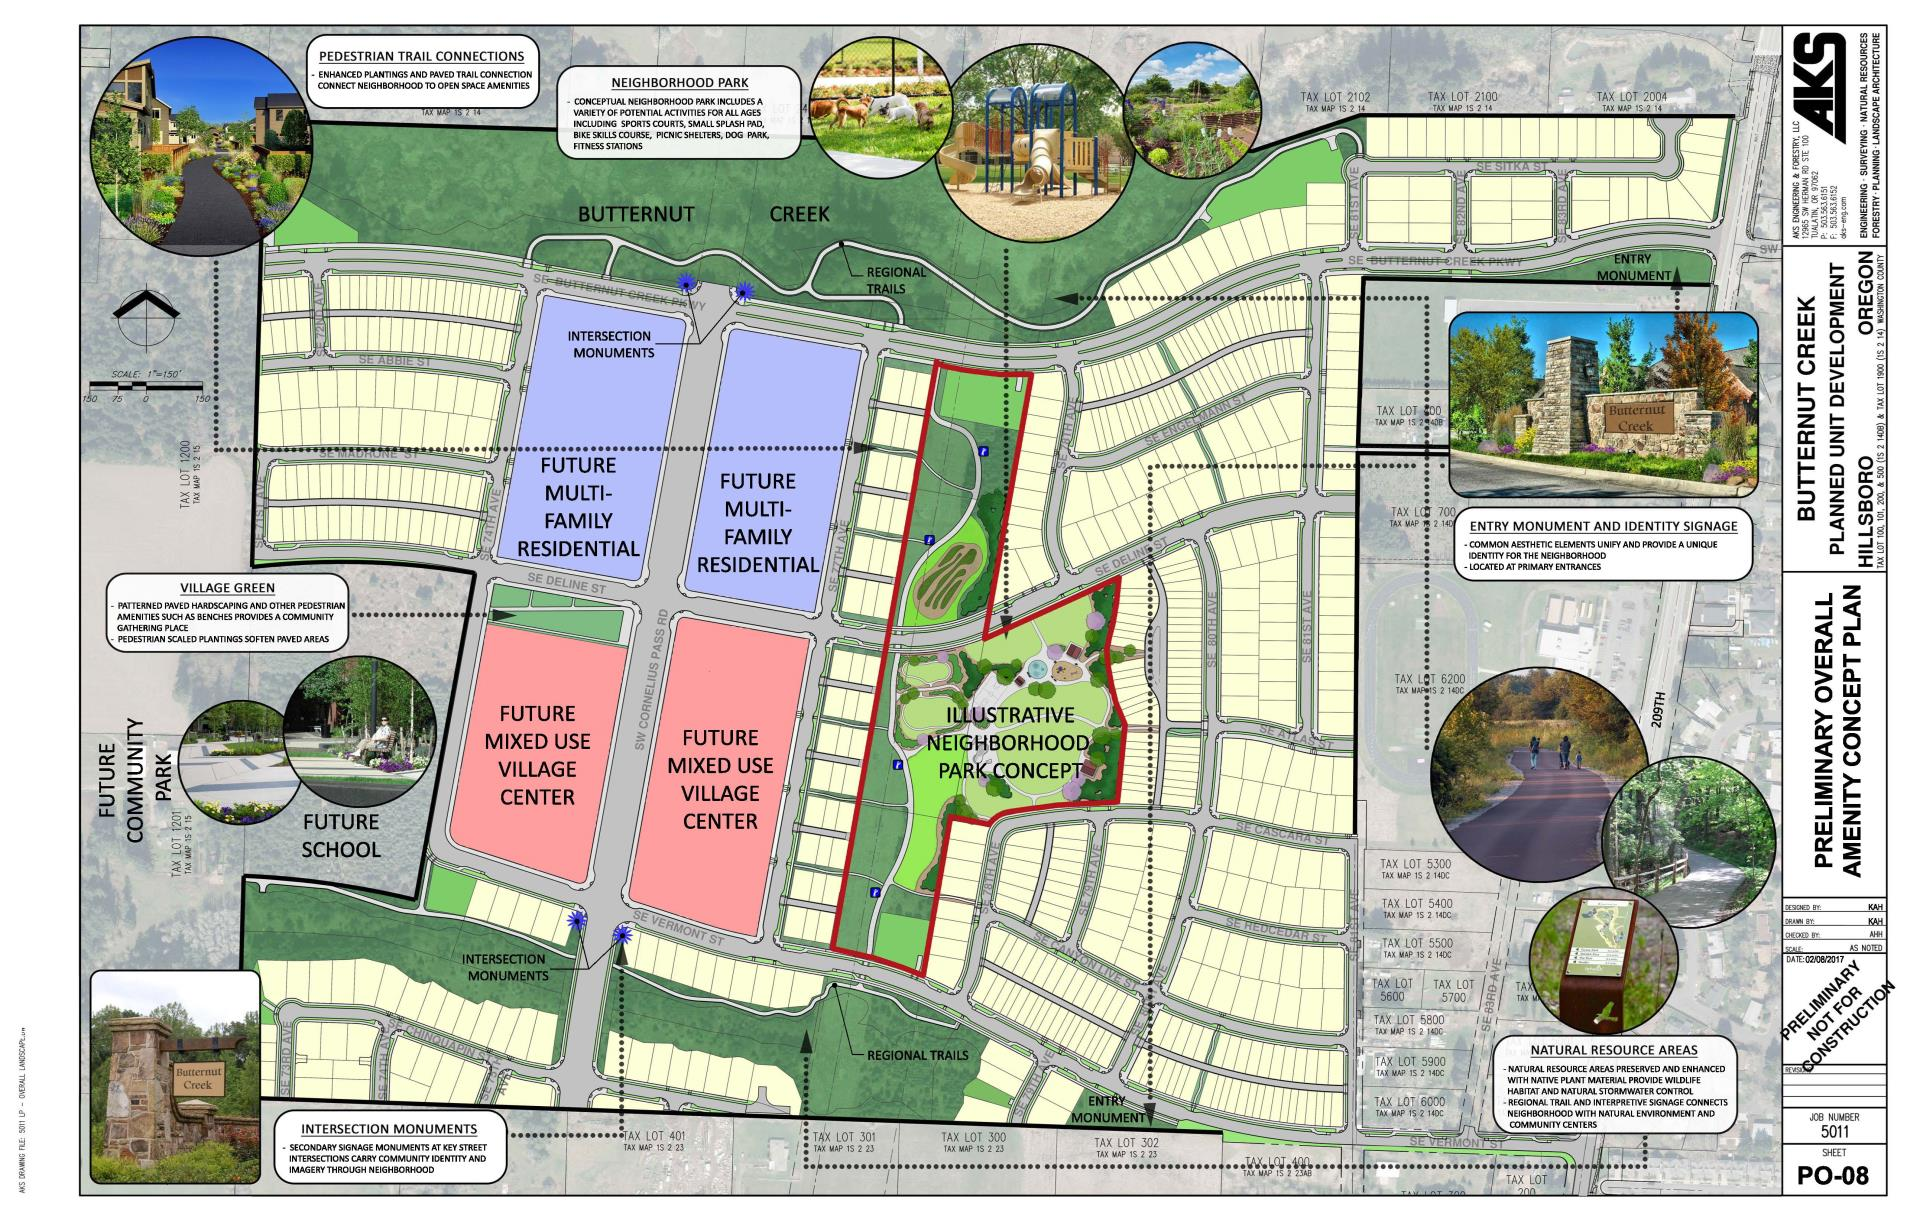 Butternut Creek Preliminary Overall Amenity Concept Plan